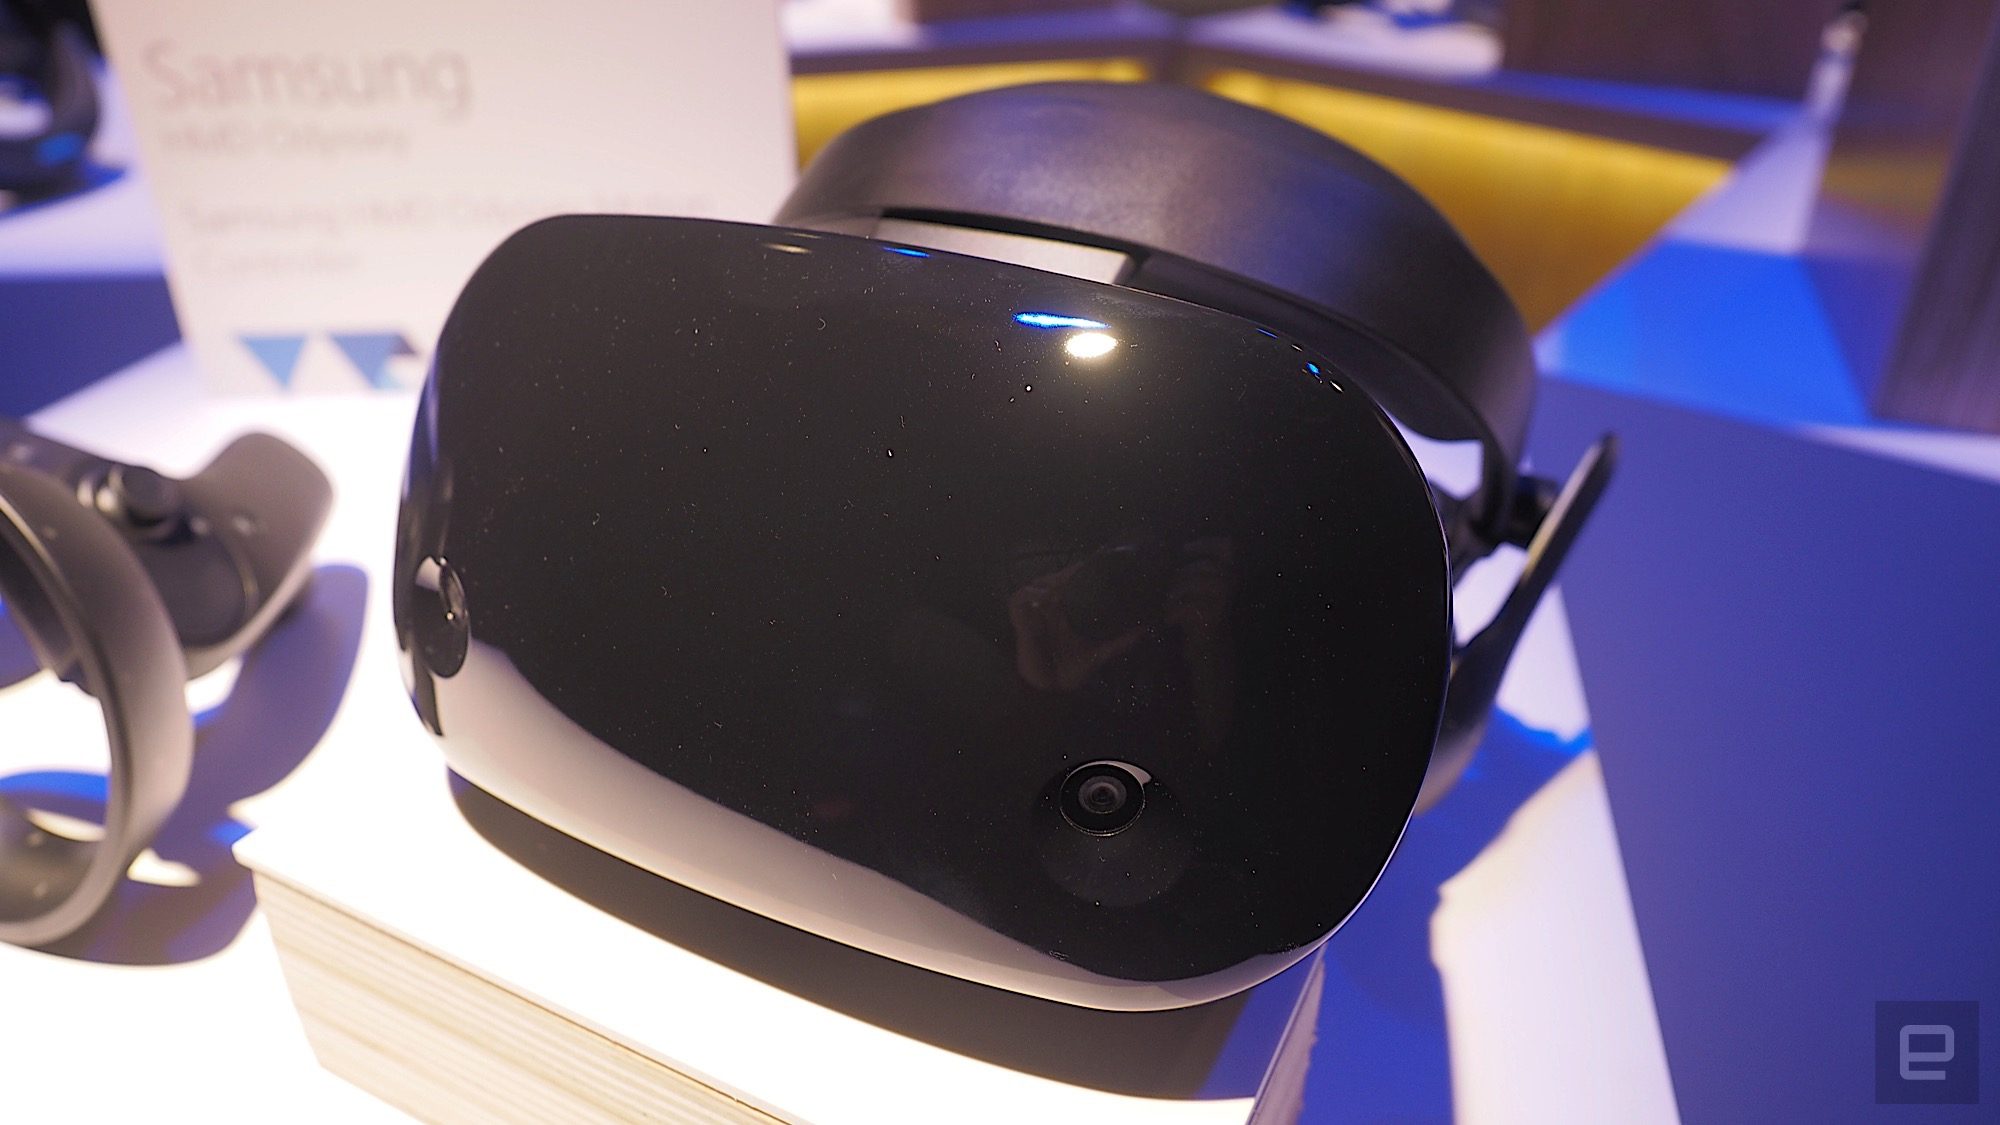 samsung u0026 39 s hmd odyssey proves image quality is worth the cost